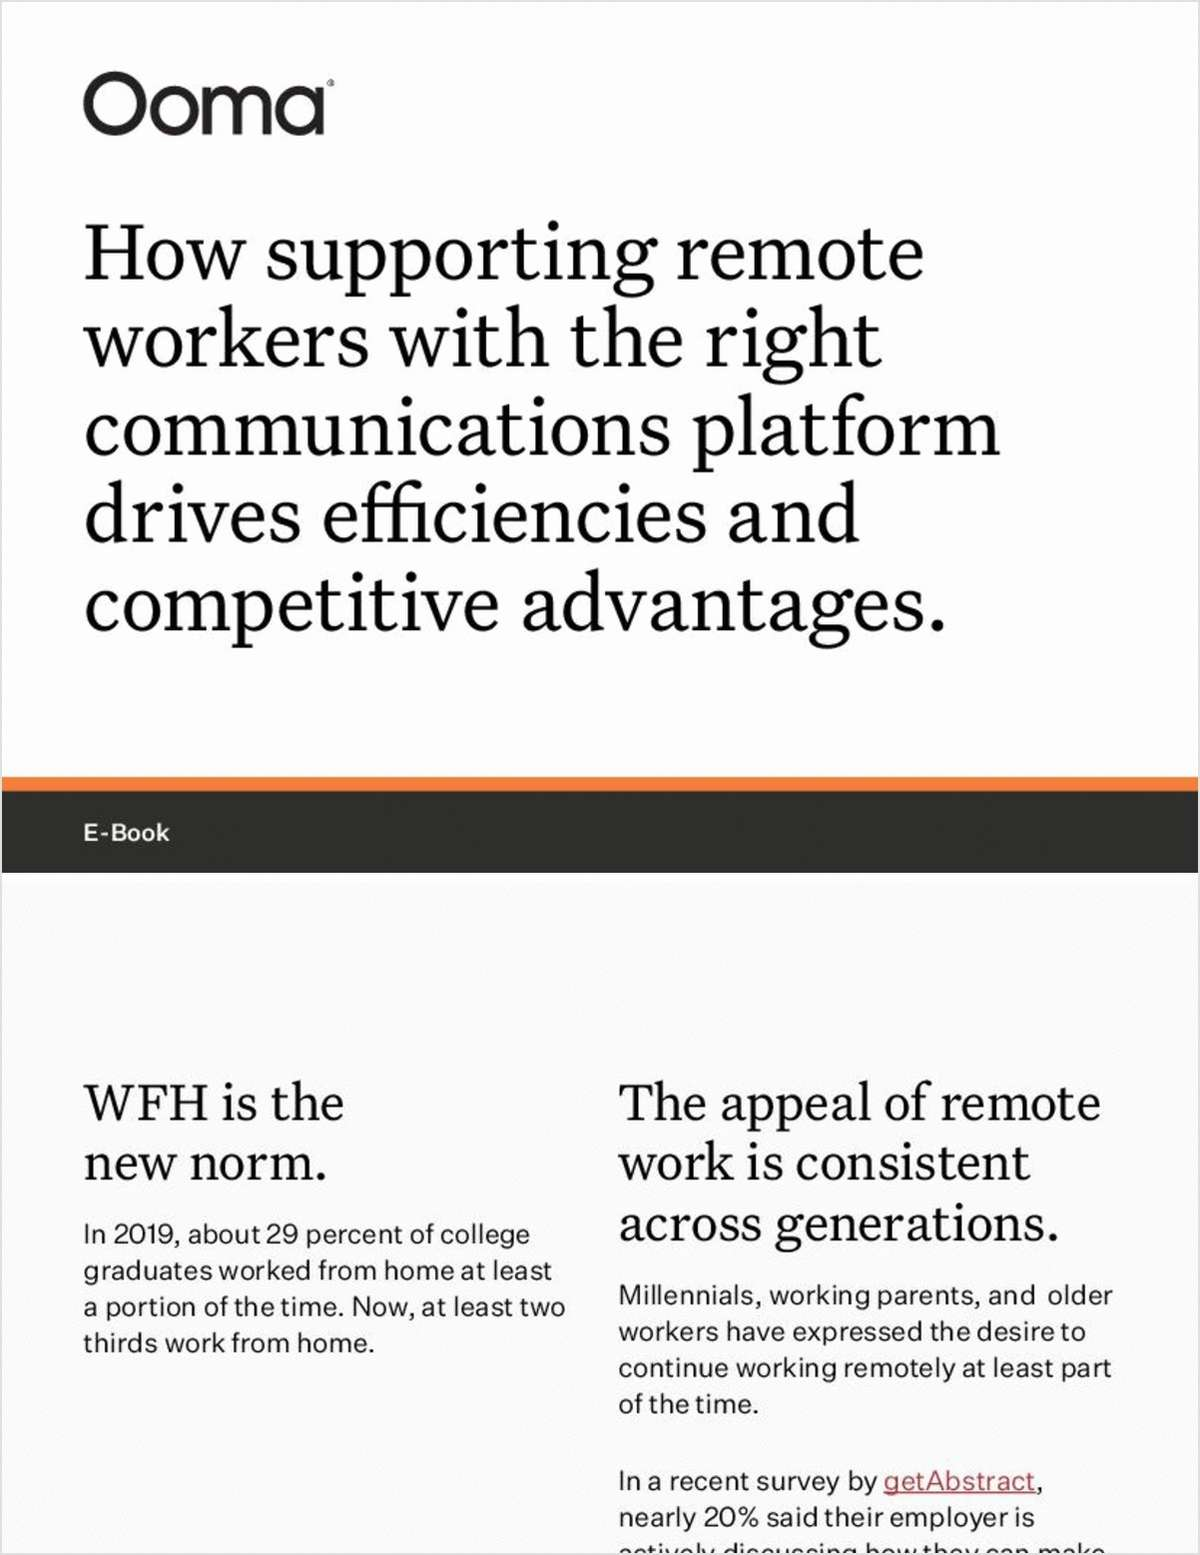 How supporting remote workers with the right communications platform drives efficiencies and competitive advantages